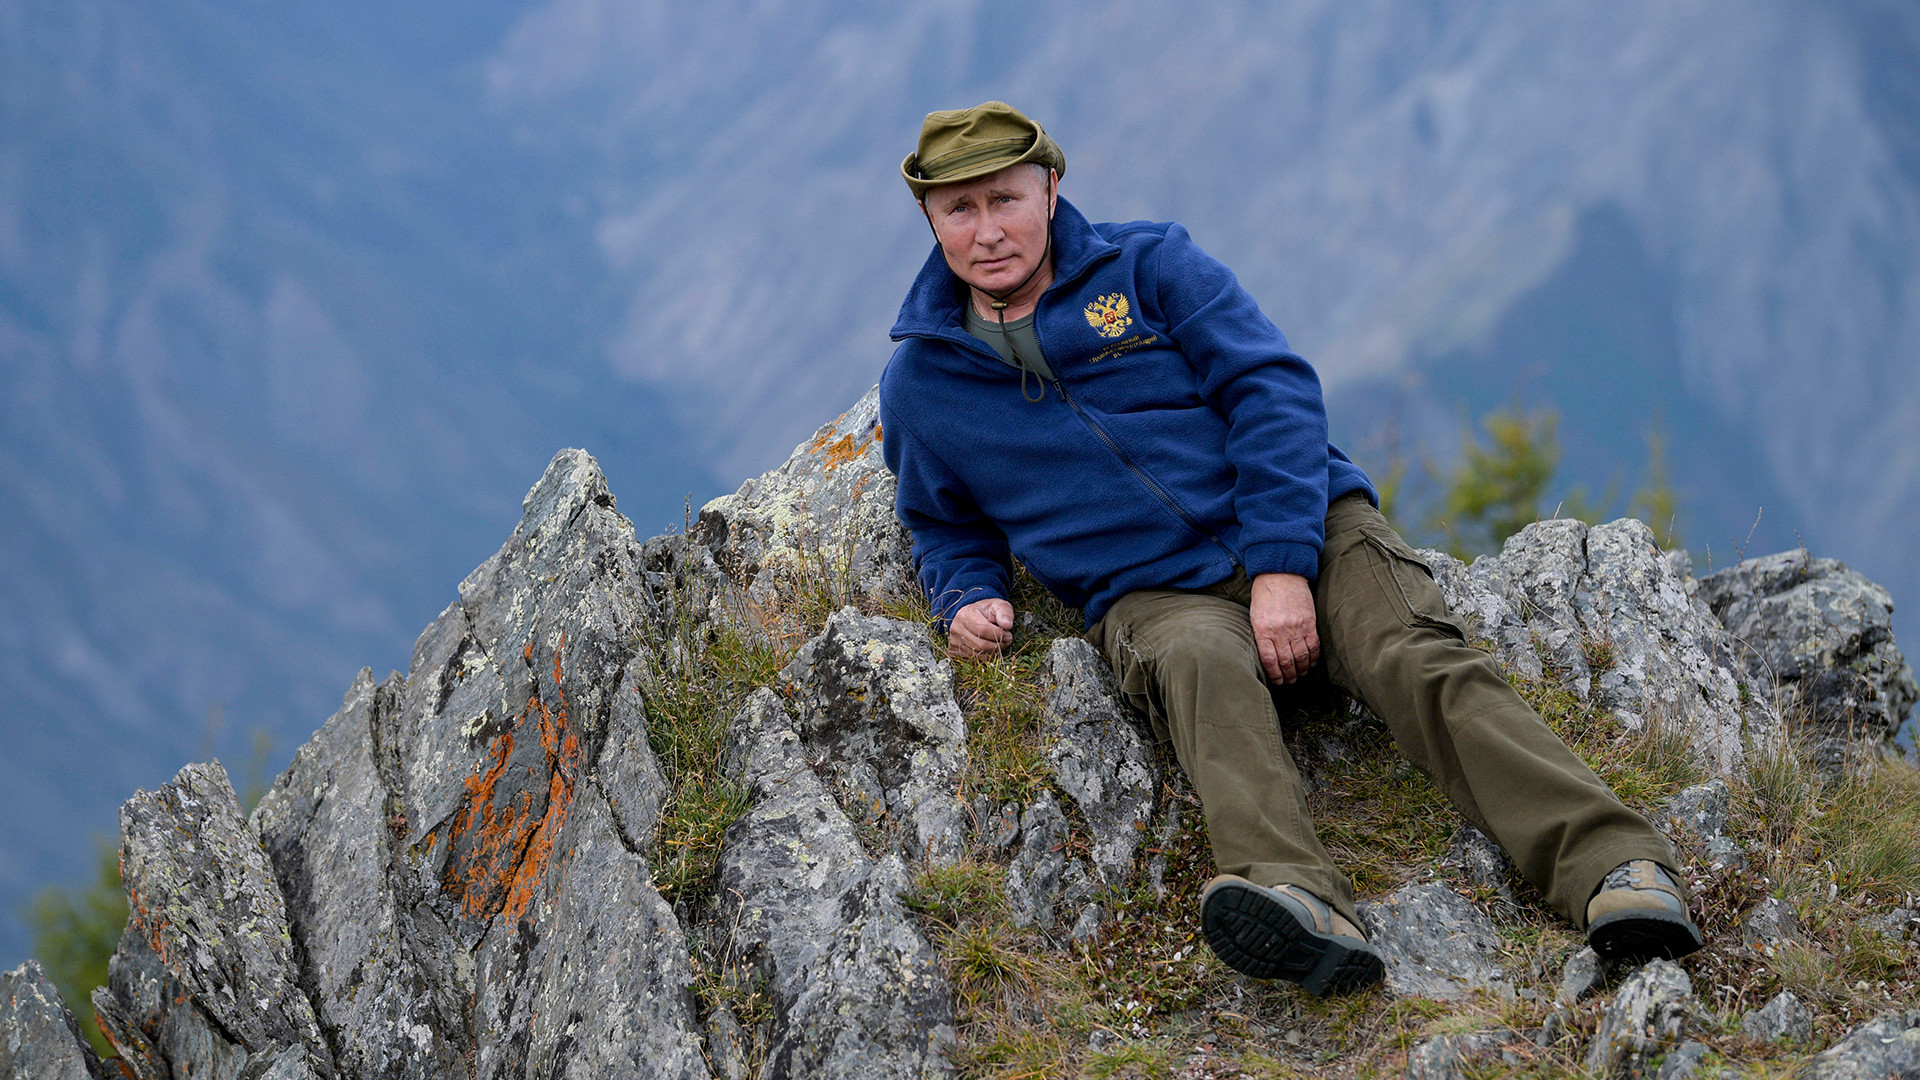 Russian President Vladimir Putin is seen during his holiday in the Siberian taiga, Russia October 7, 2019